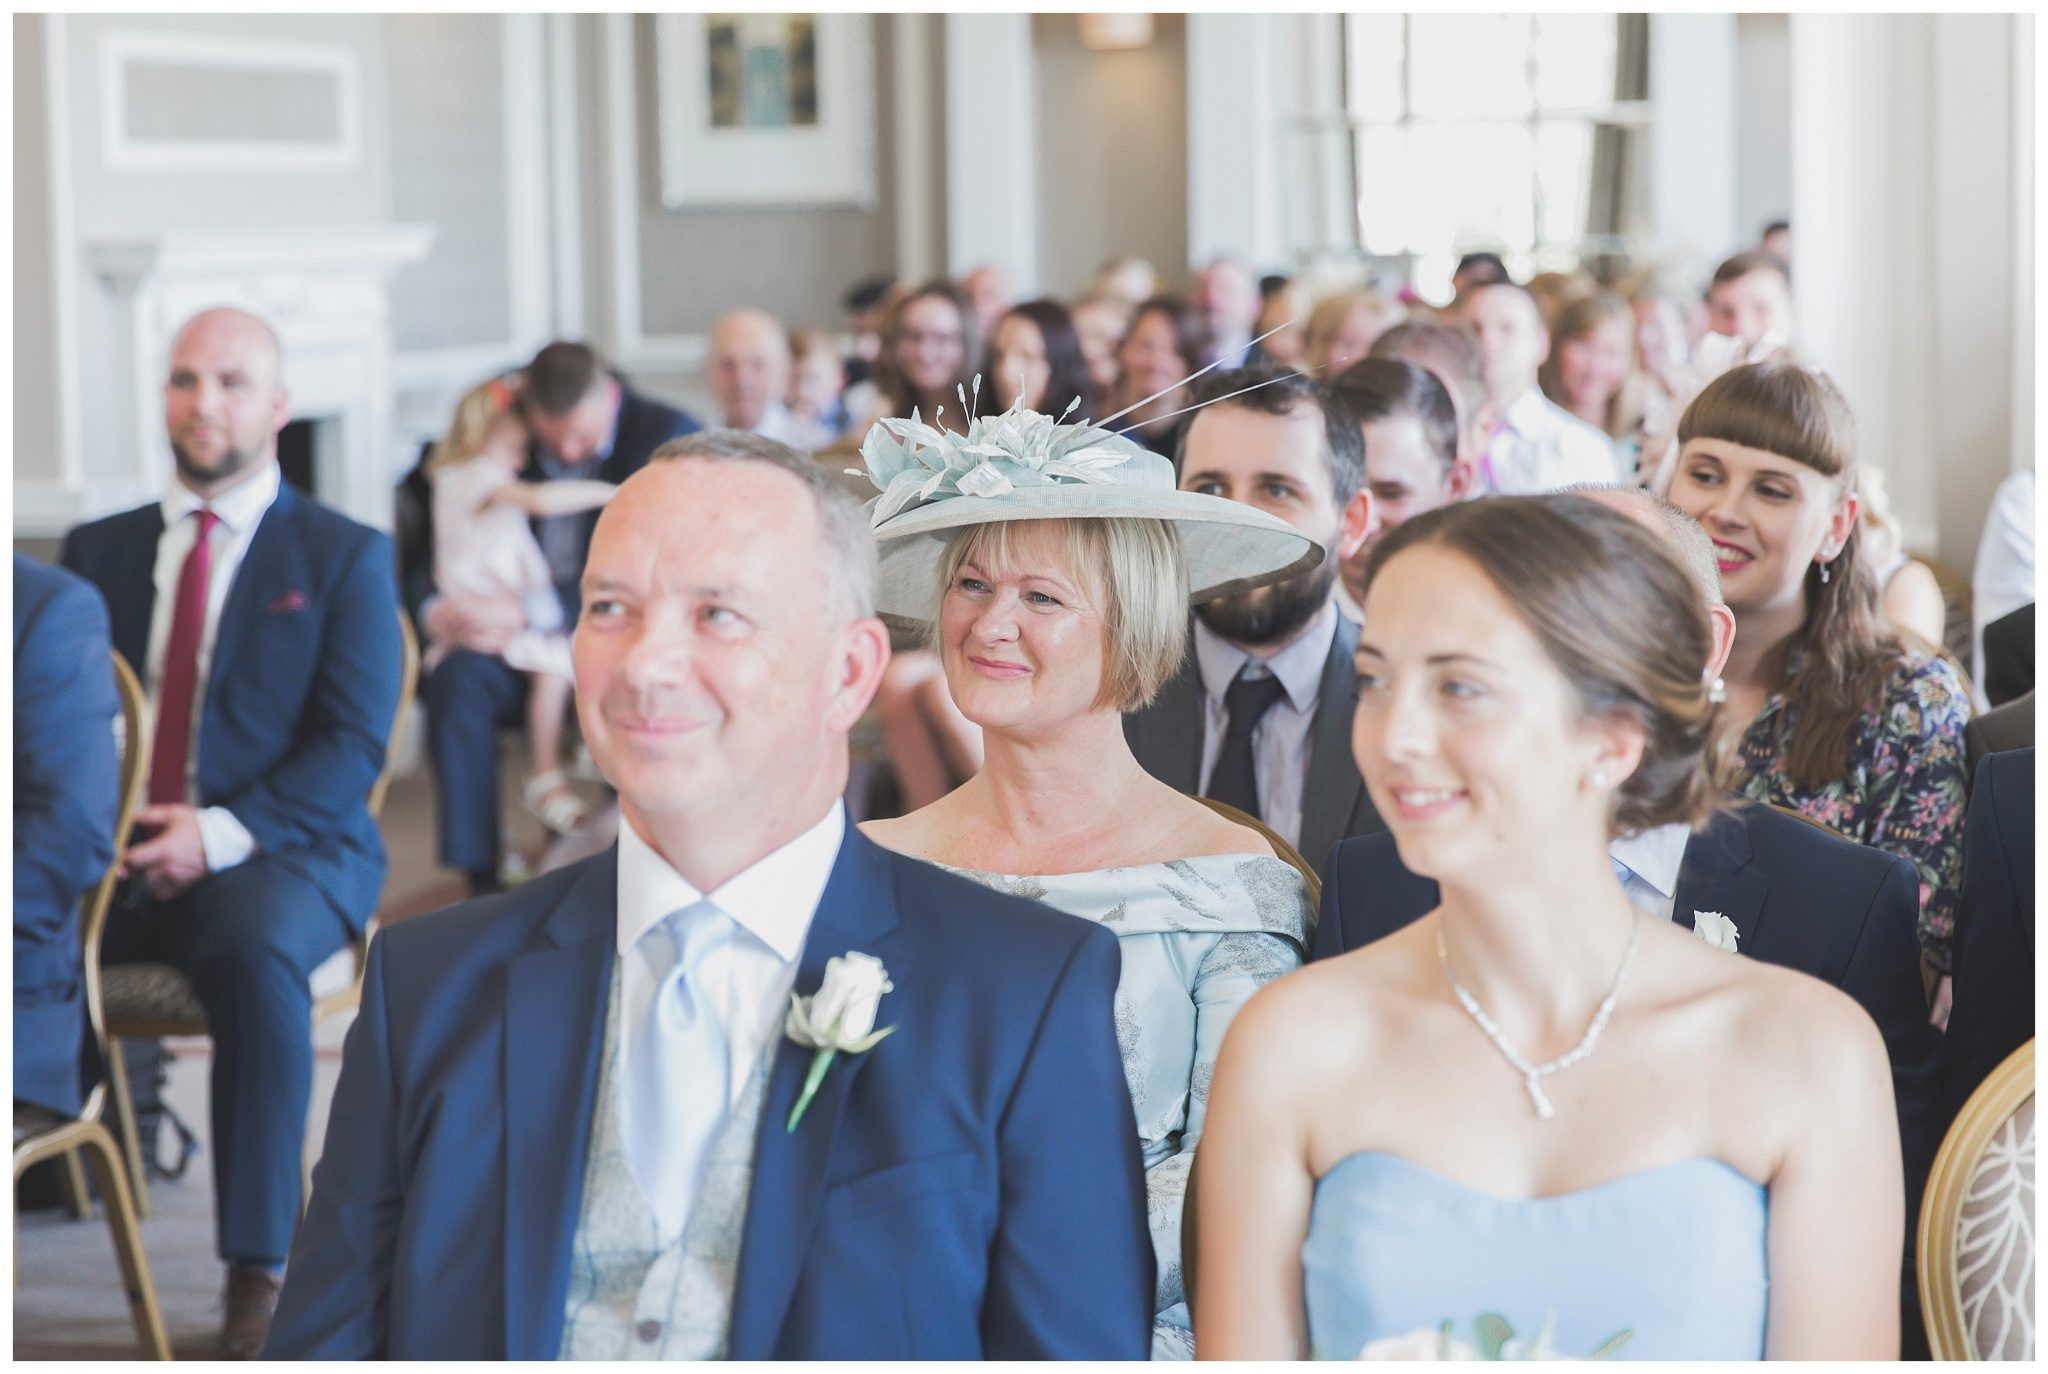 Mother of the bride smiling